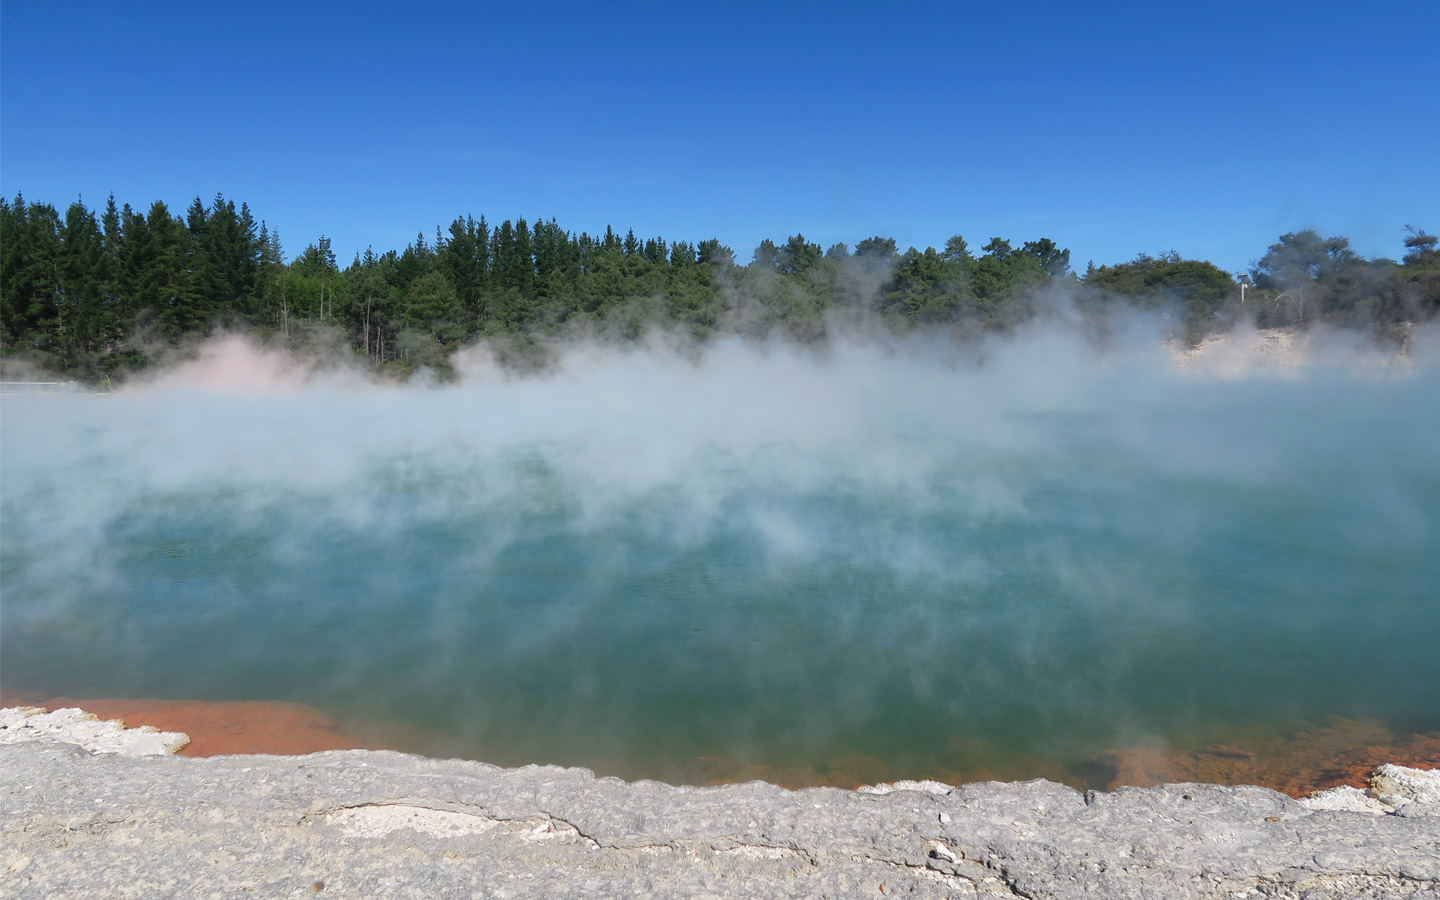 steam coming off blue and orange lake in geothermal area in new zealand